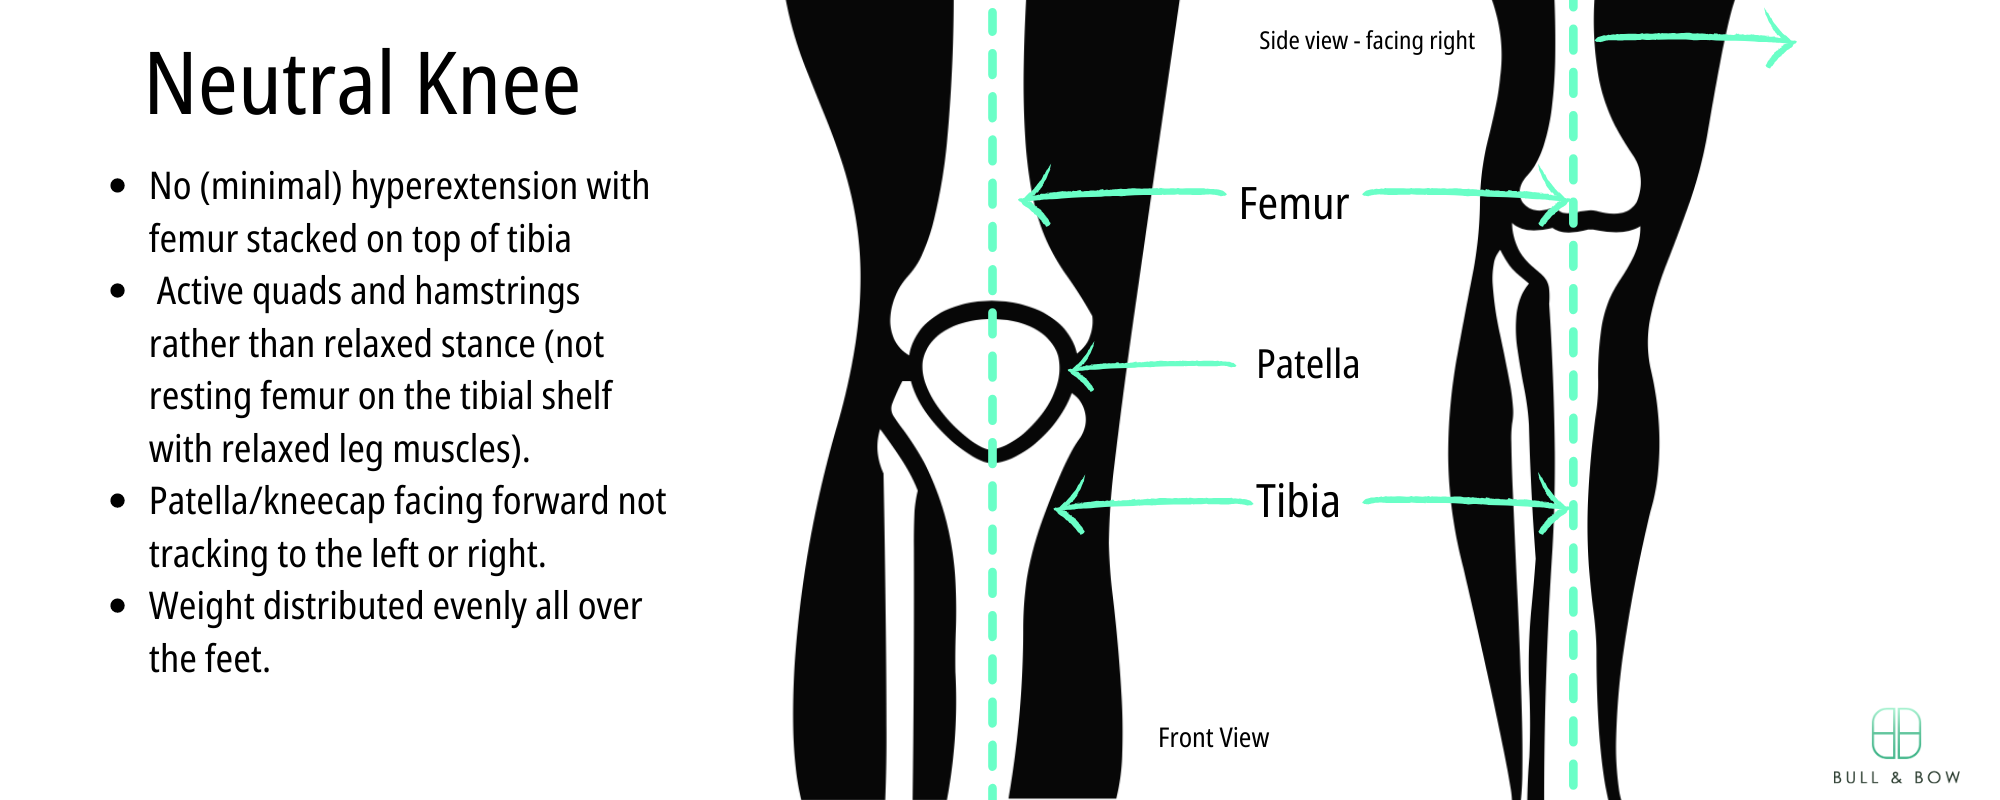 Neutral or locked knee description with side and front view of knee joint.